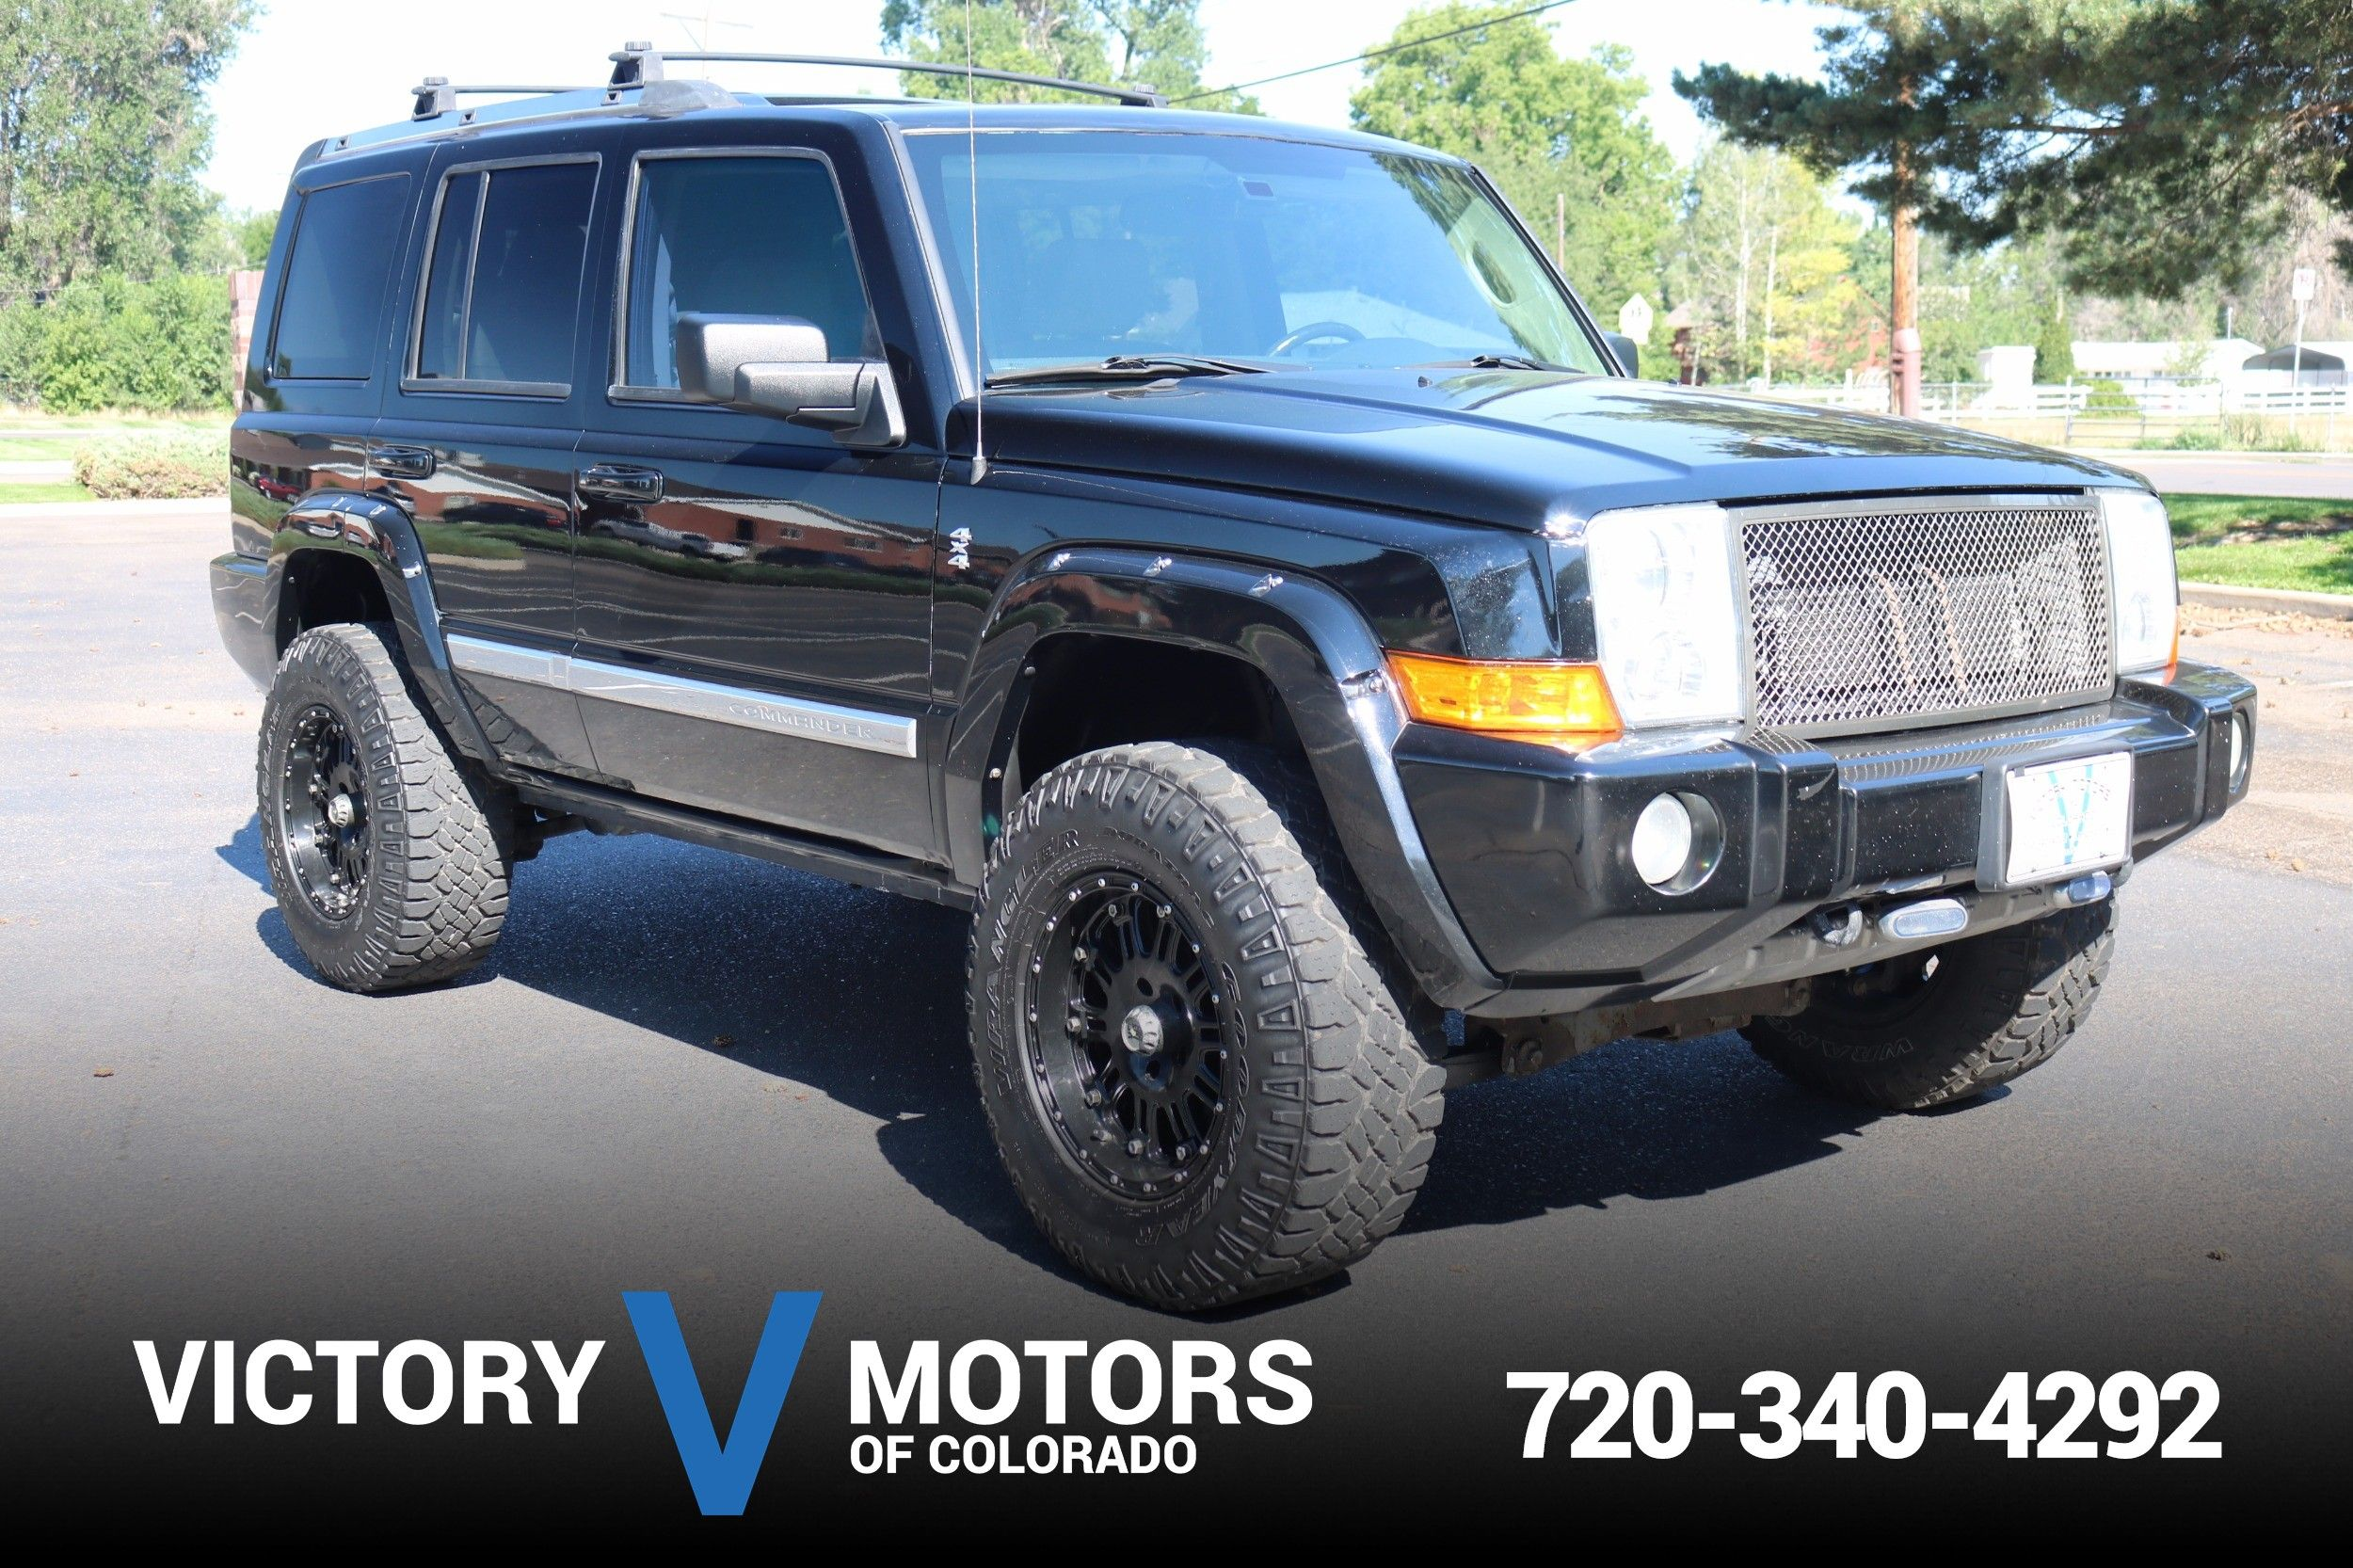 2006 jeep commander limited victory motors of colorado2006 jeep commander limited